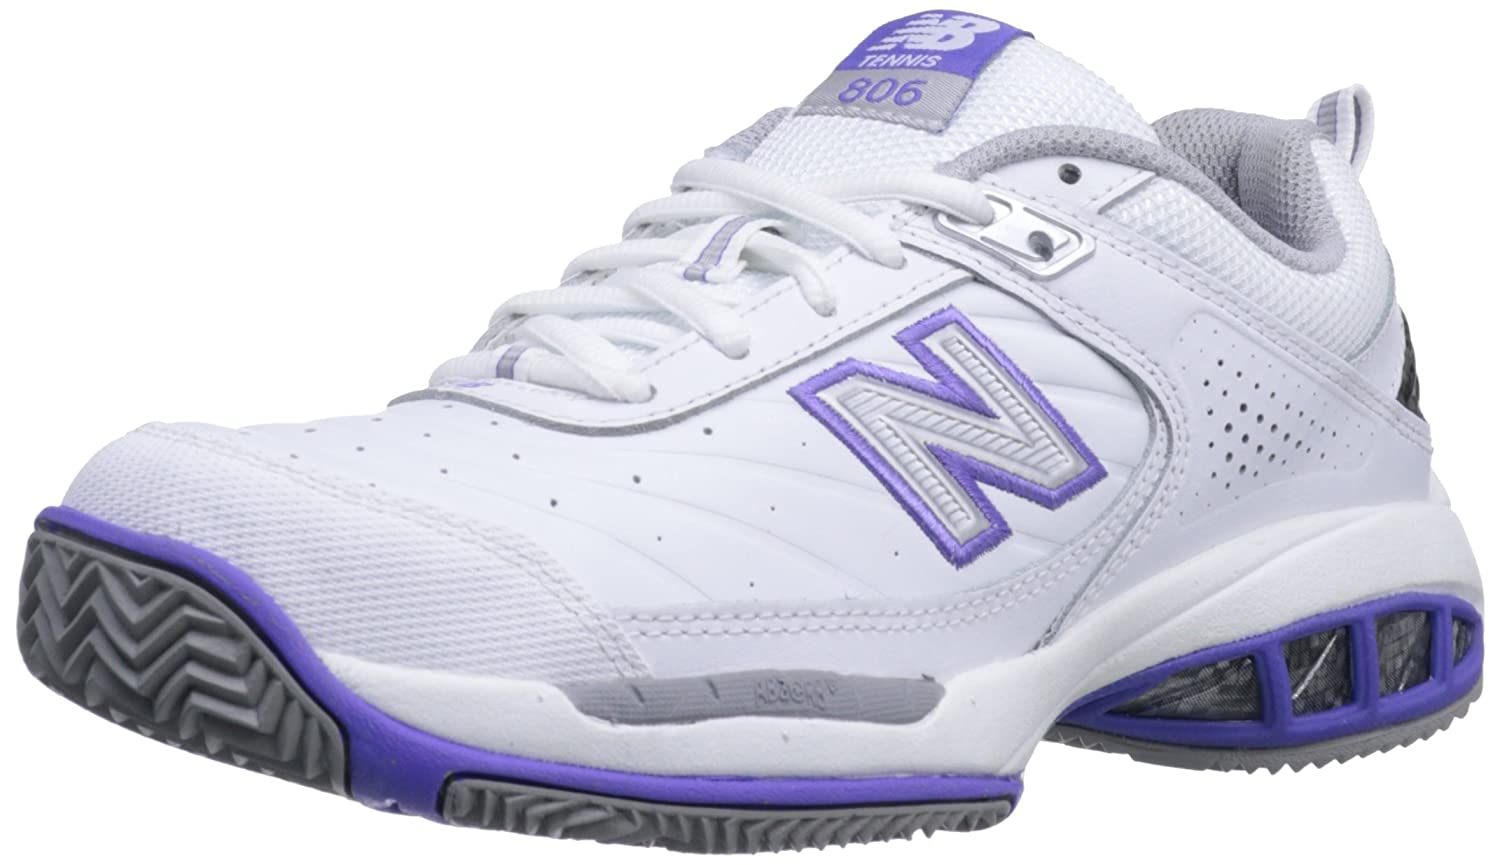 New Balance Women's WC806 Tennis-W Tennis Shoe B0098G2L1S 8.5 B(M) US|White